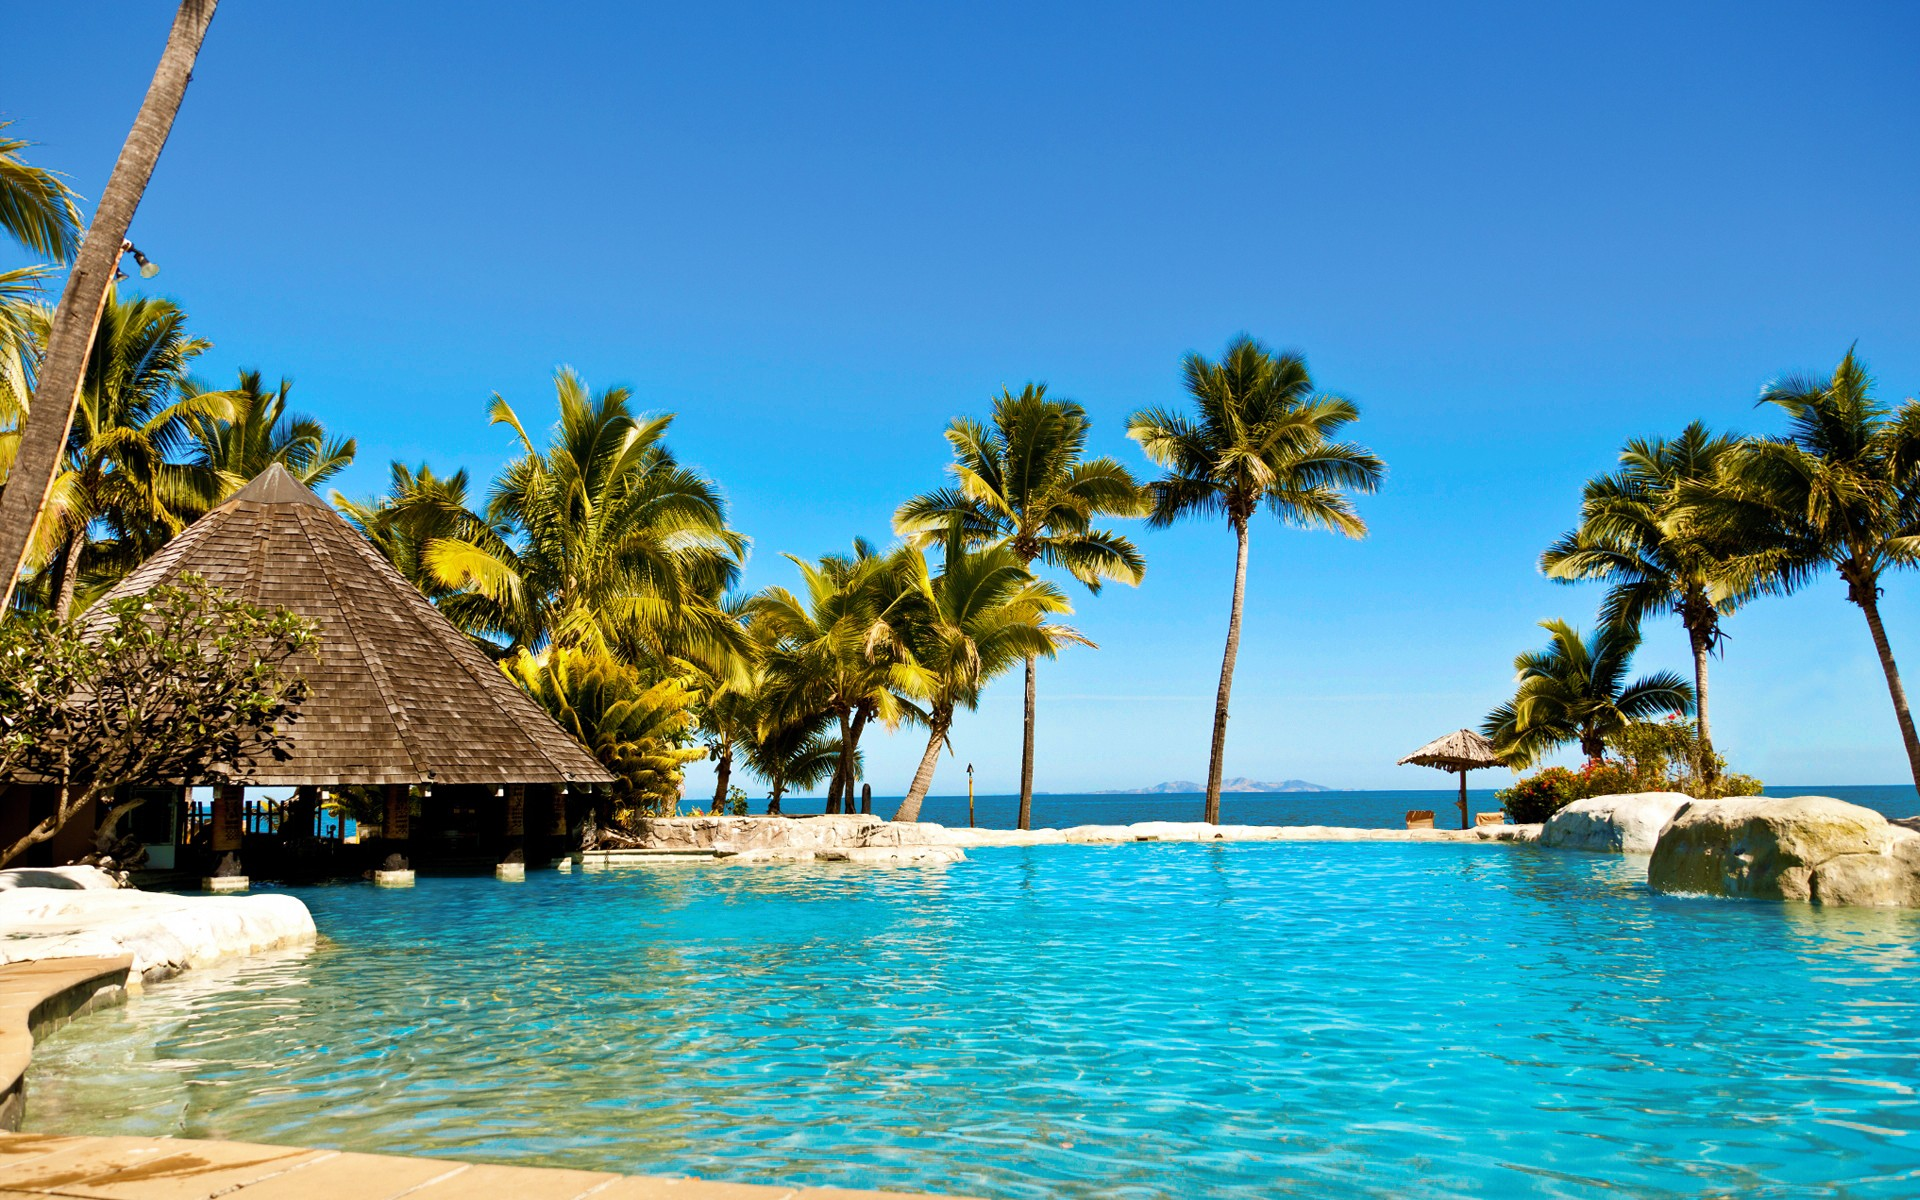 water ocean Sun summer tropical Fiji palm trees huts swimming pools hotels Fiji islands resort relaxation sea beaches